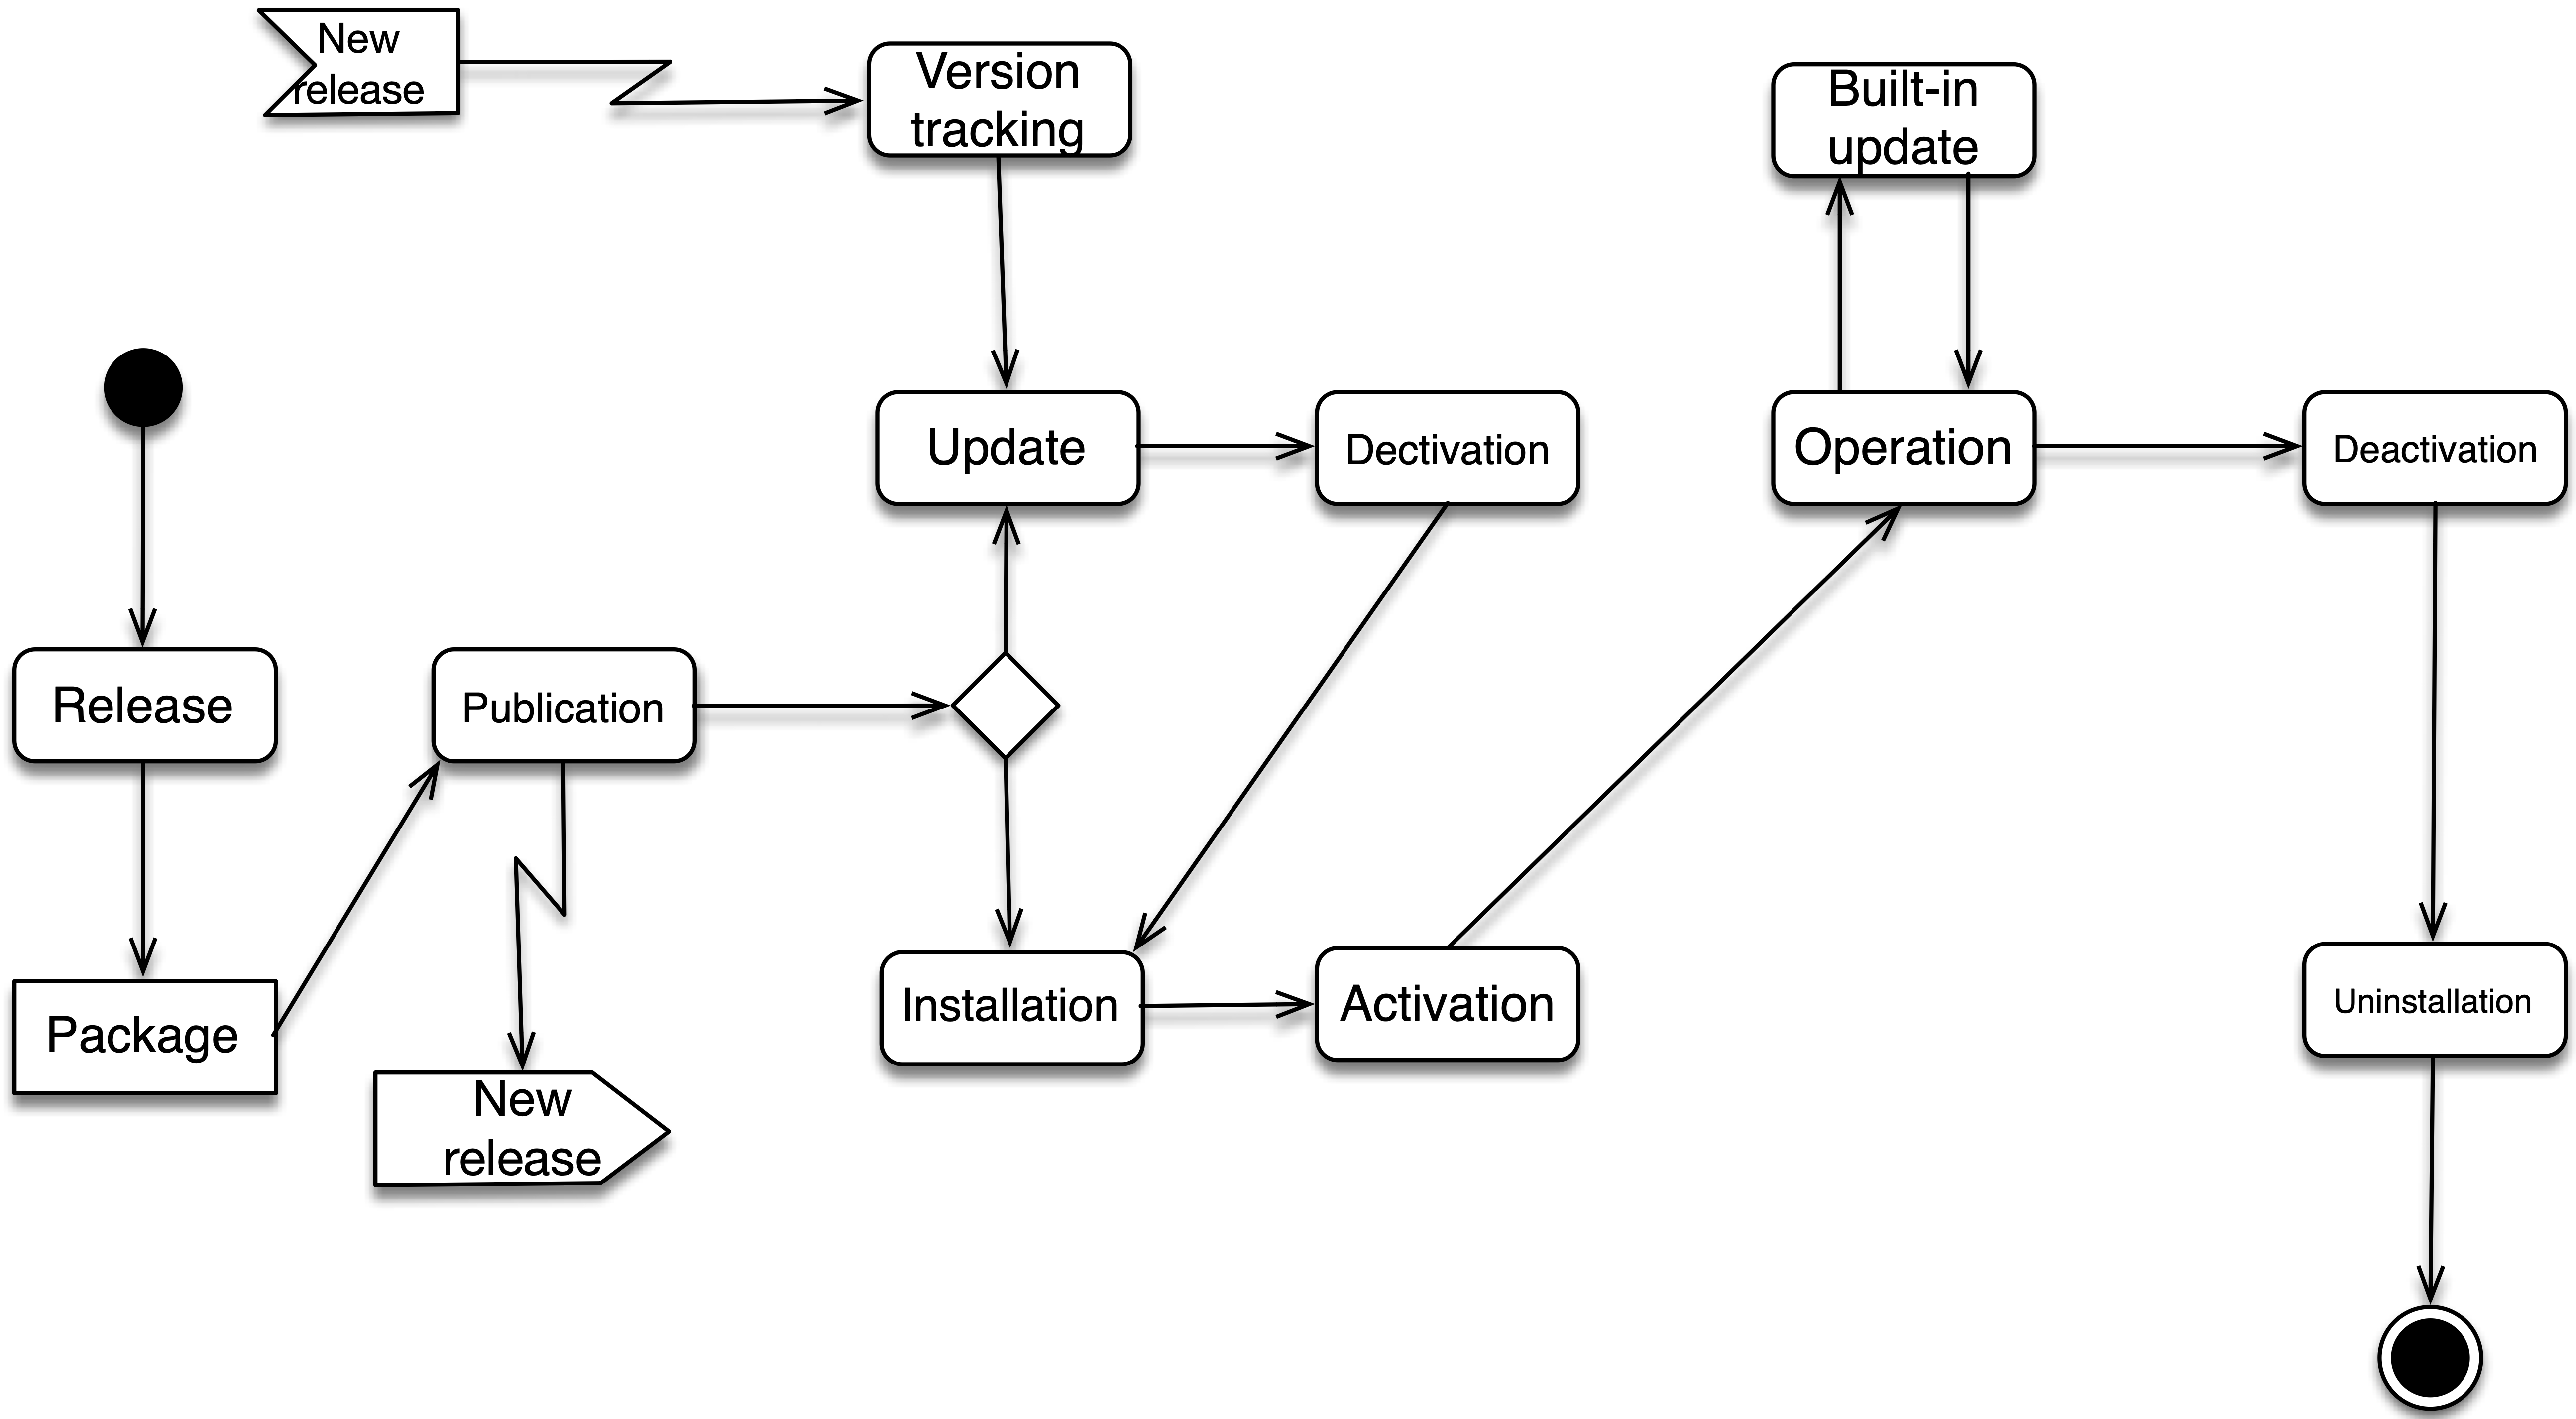 images/deployment-activities.png